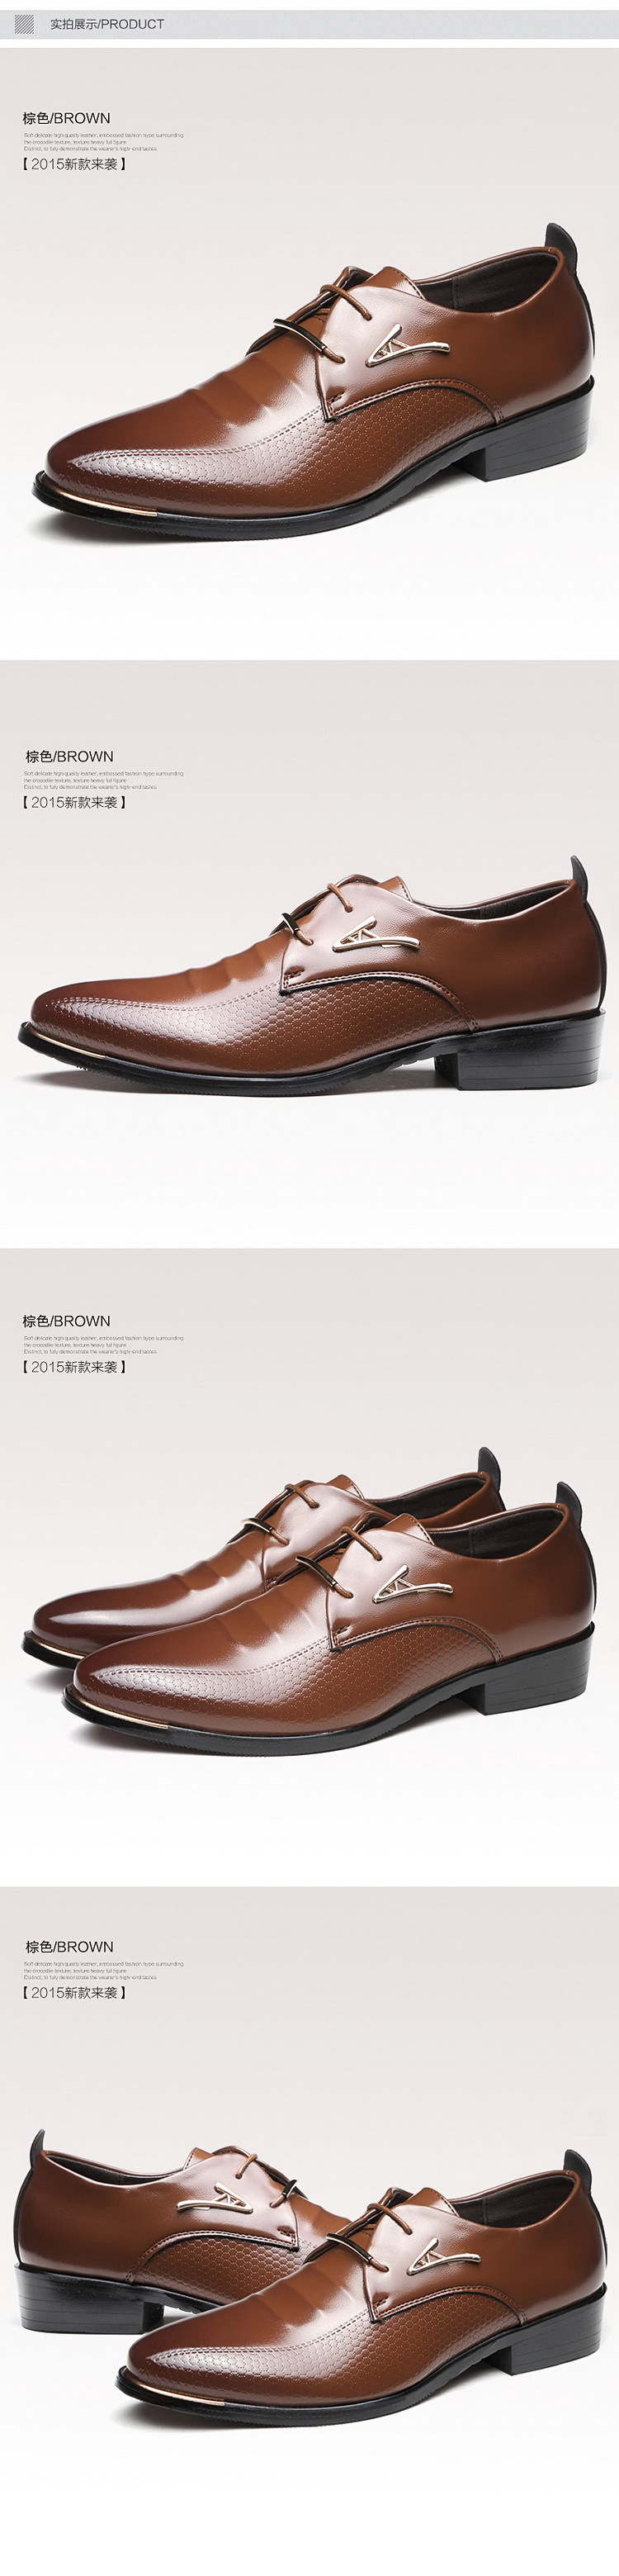 leather oxford shoes for men (13)